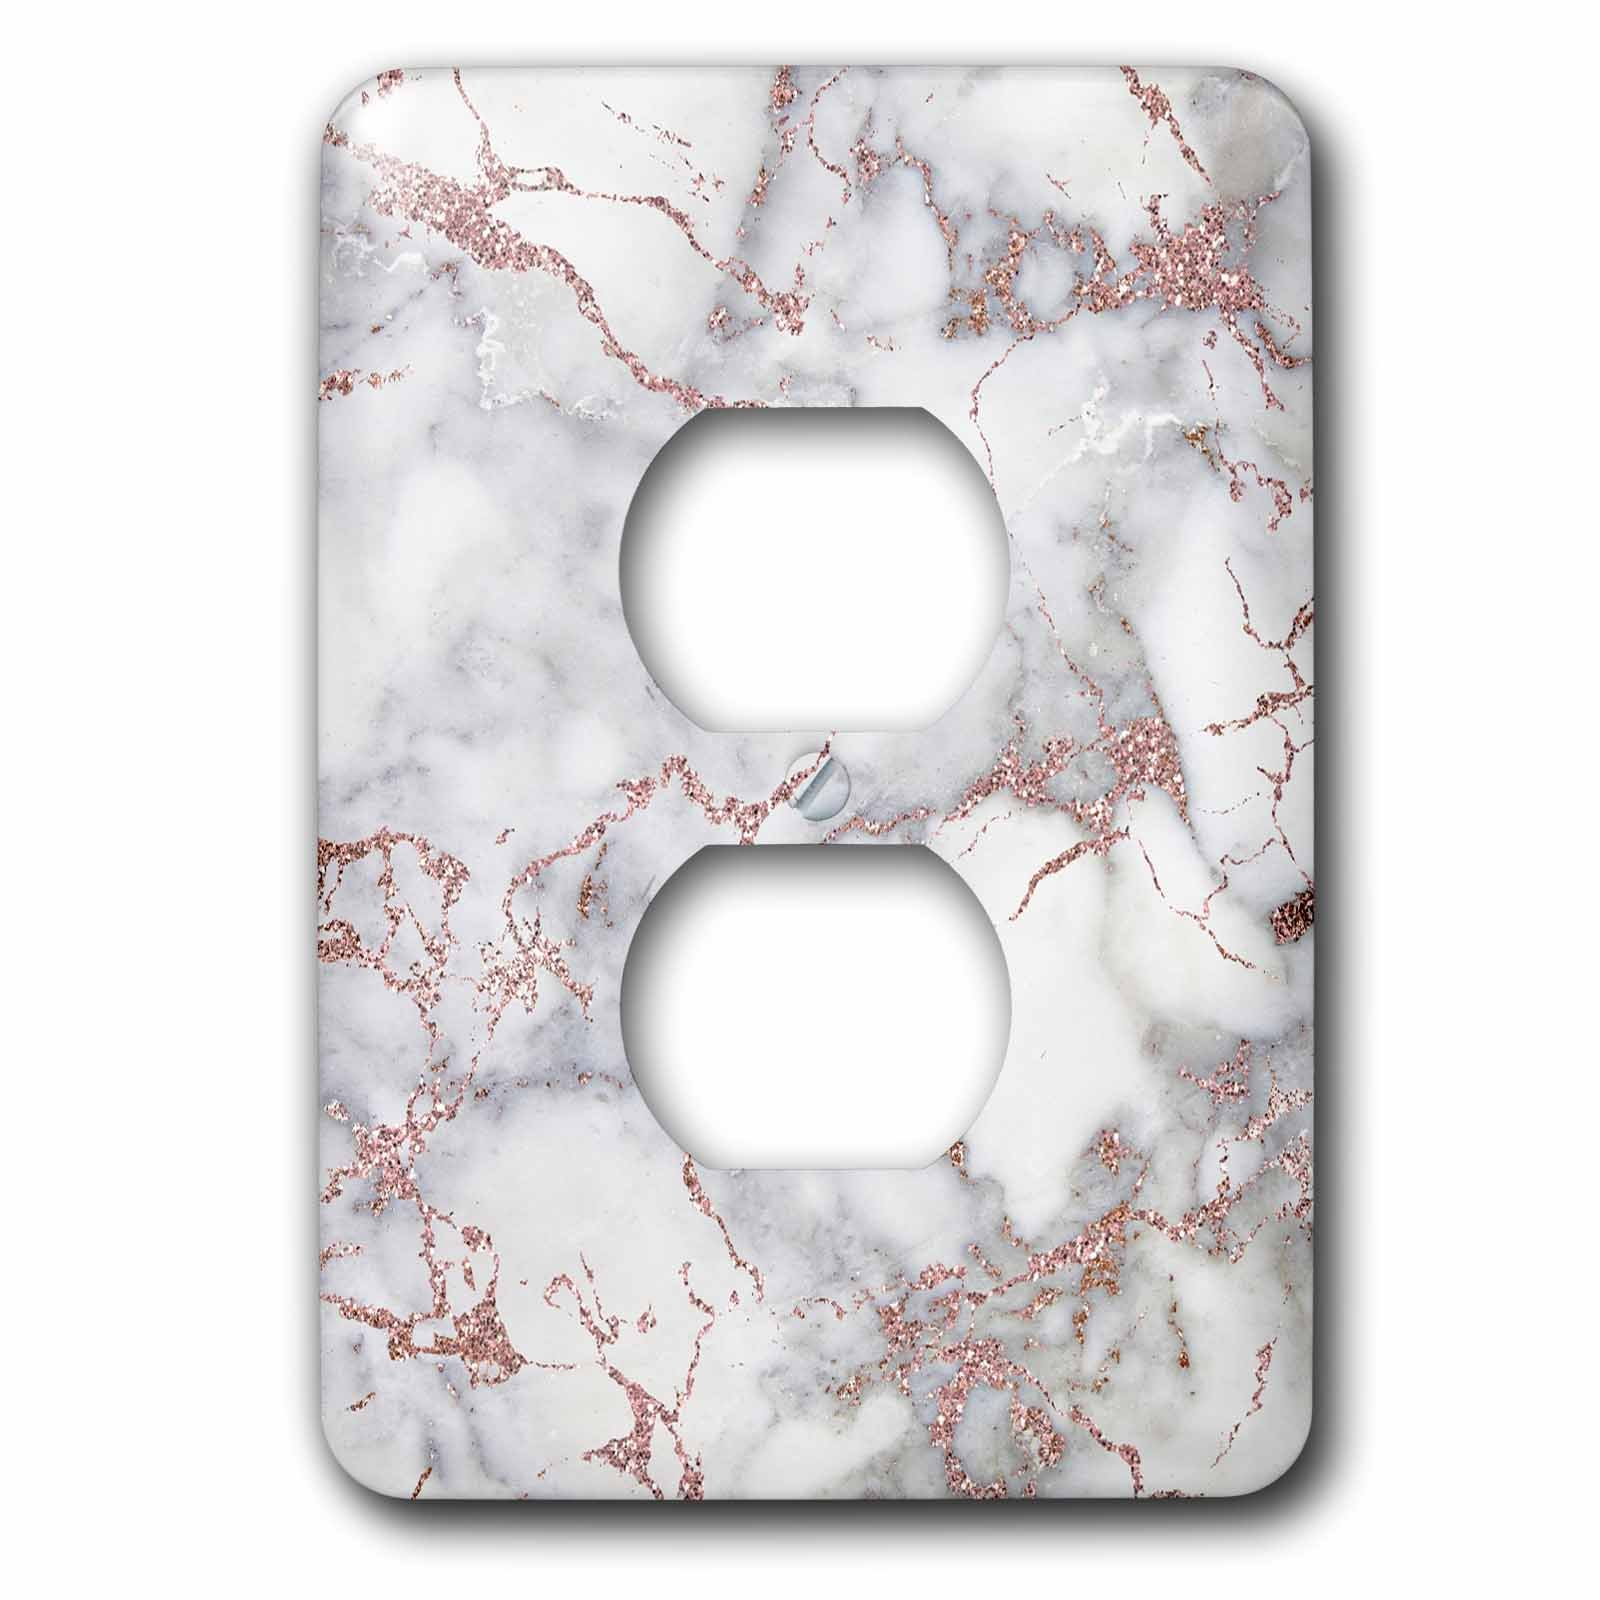 3dRose Uta Naumann Faux Glitter Pattern - Image of Shiny Luxury Trendy Rose gold Glitter Marble Agate Quartz - Light Switch Covers - 2 plug outlet cover (lsp_275086_6)